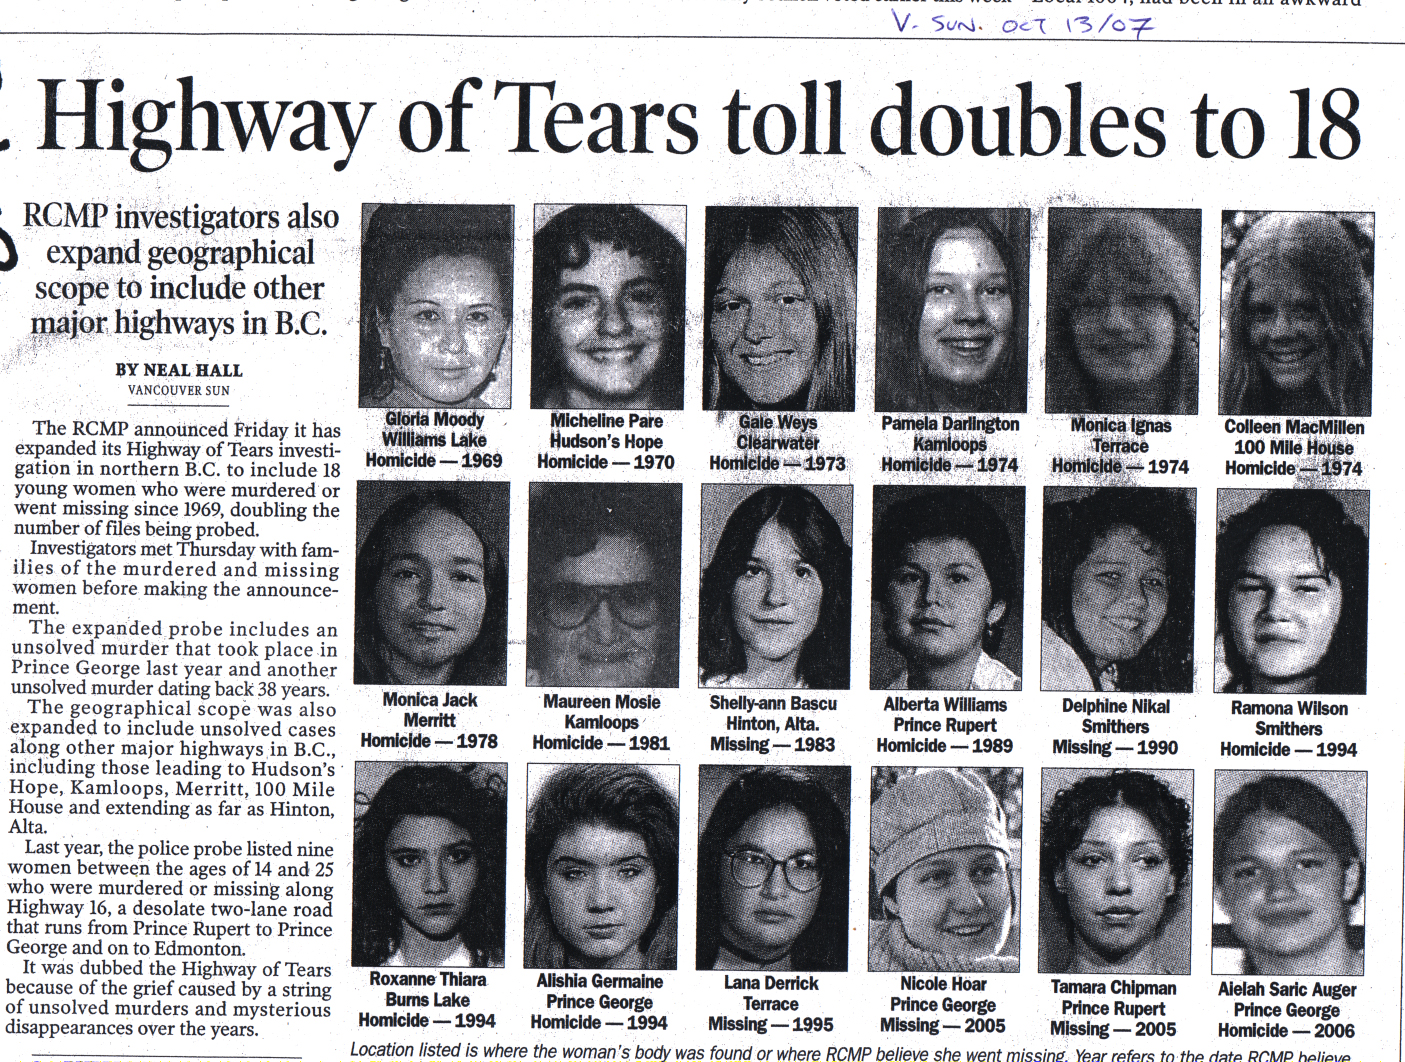 http://warriorpublications.files.wordpress.com/2013/02/missing-women-highway-of-tears-news.jpg